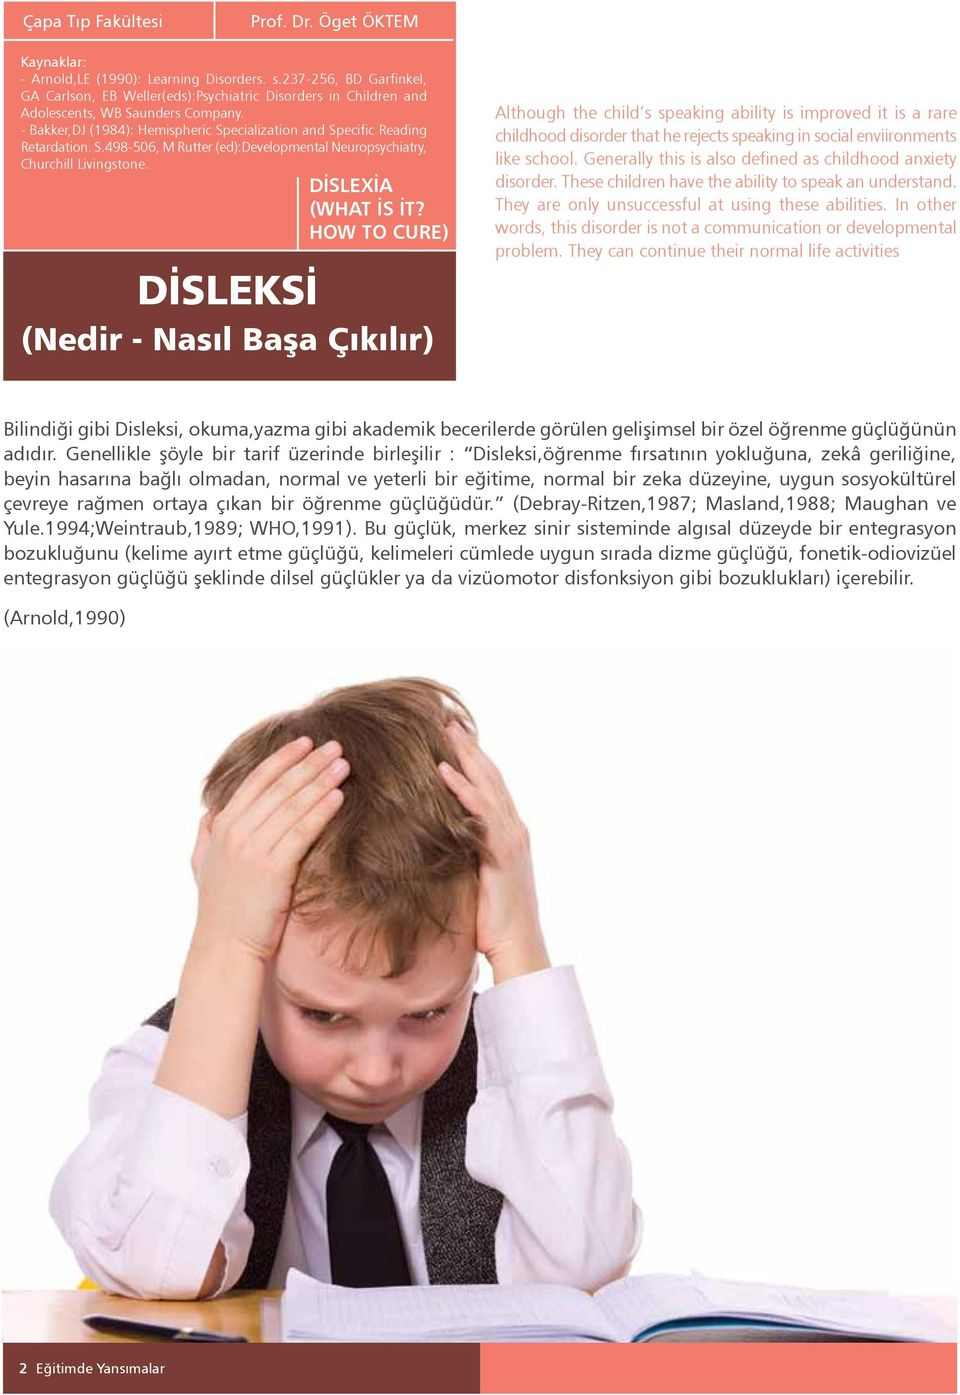 - Bakker,DJ (1984): Hemispheric Specialization and Specific Reading Retardation. S.498-506, M Rutter (ed):developmental Neuropsychiatry, Churchill Livingstone. DİSLEXİA (WHAT İS İT?